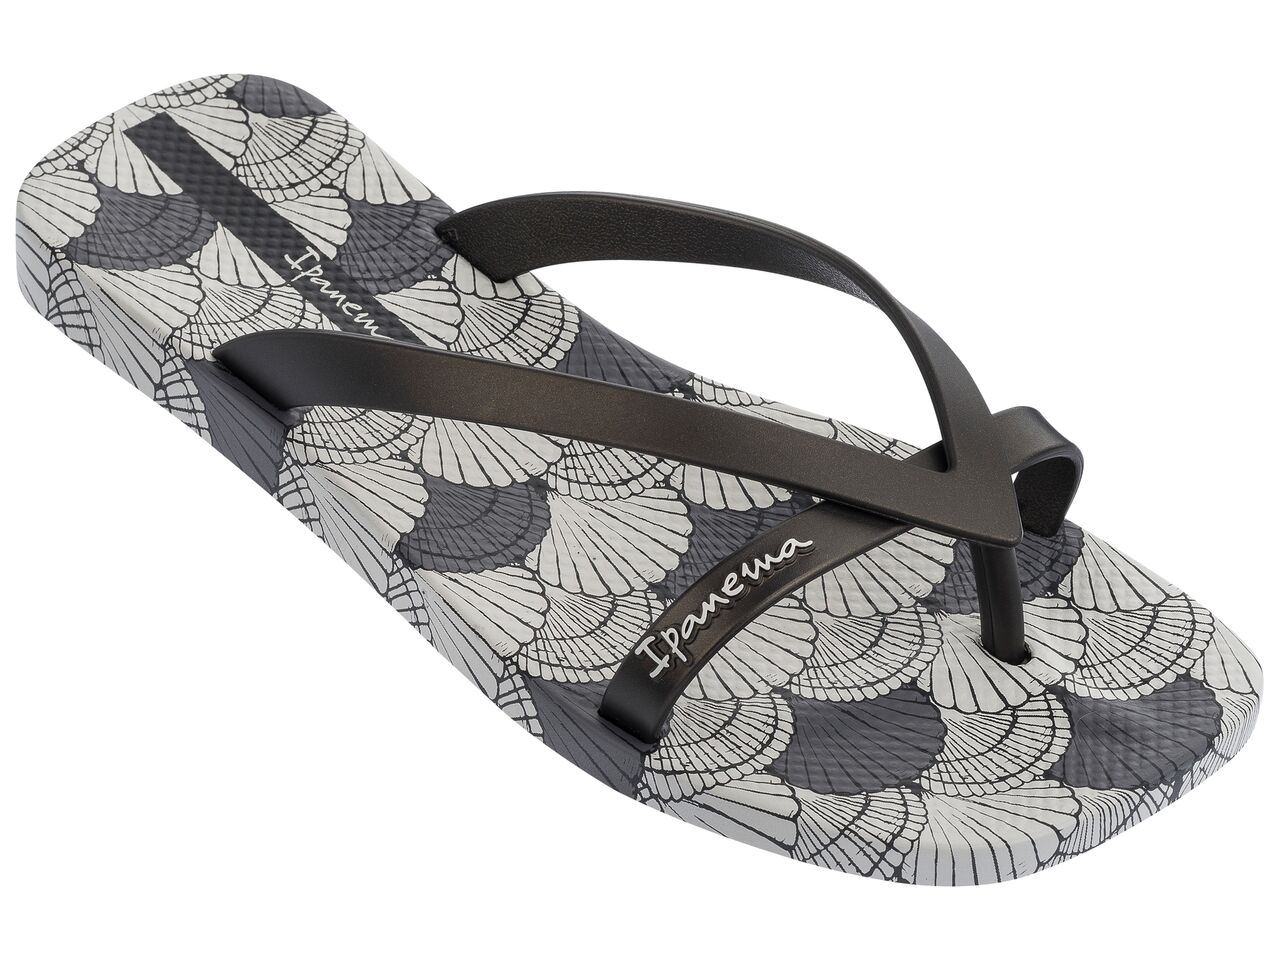 679c40b4a Description We love the Kirey new strap configuration. You get the feel of  a classic flip flop strap with the addition of a second strap running  across your ...